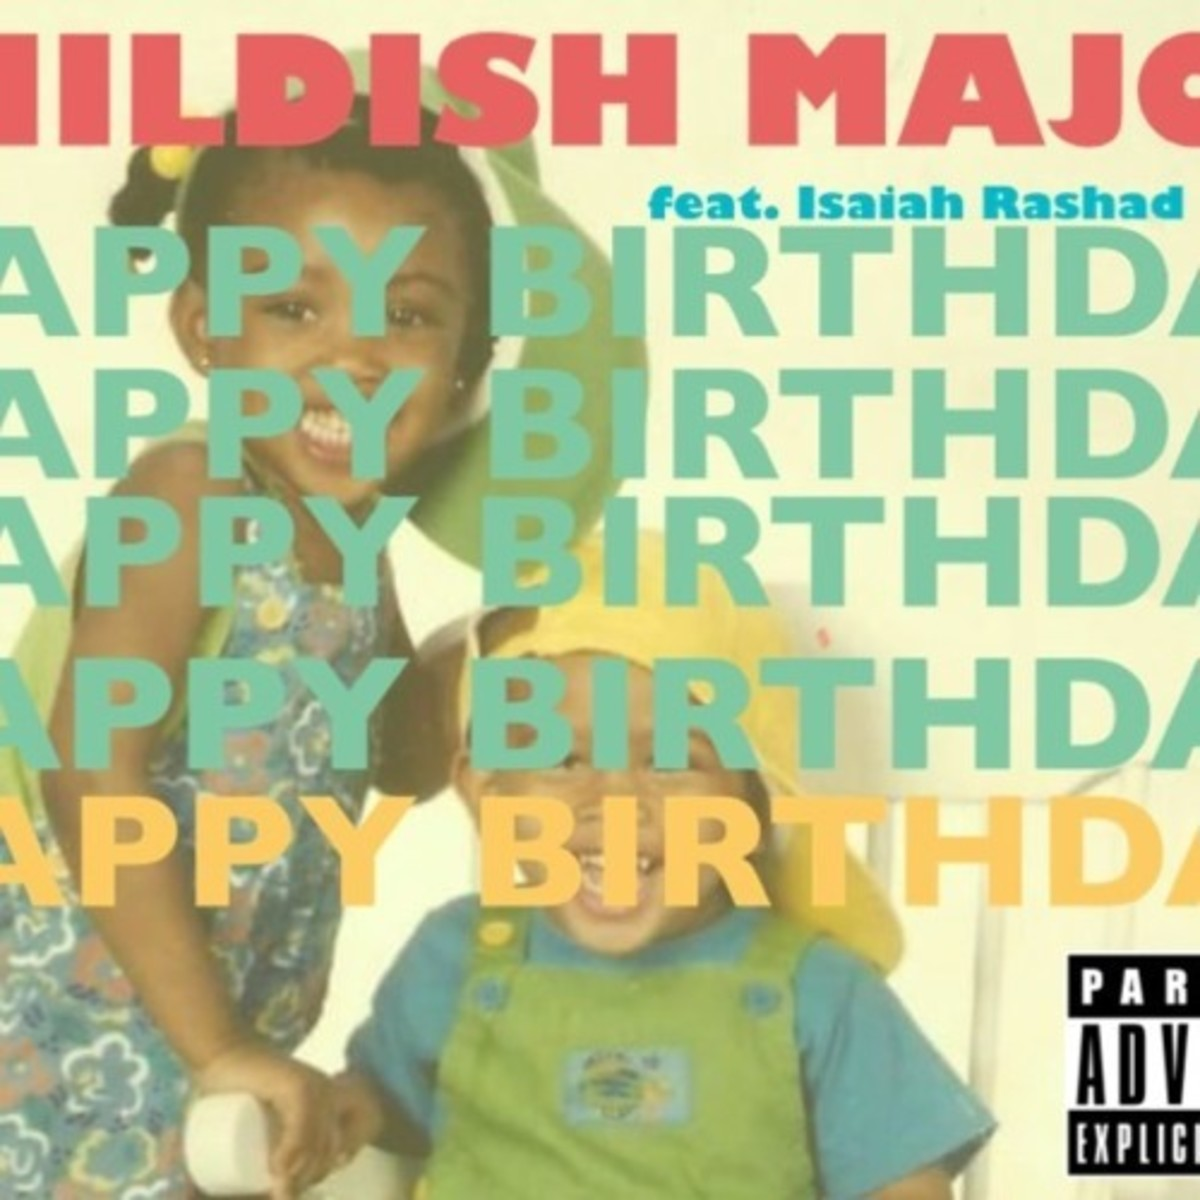 childish-major-happy-birthday.jpg